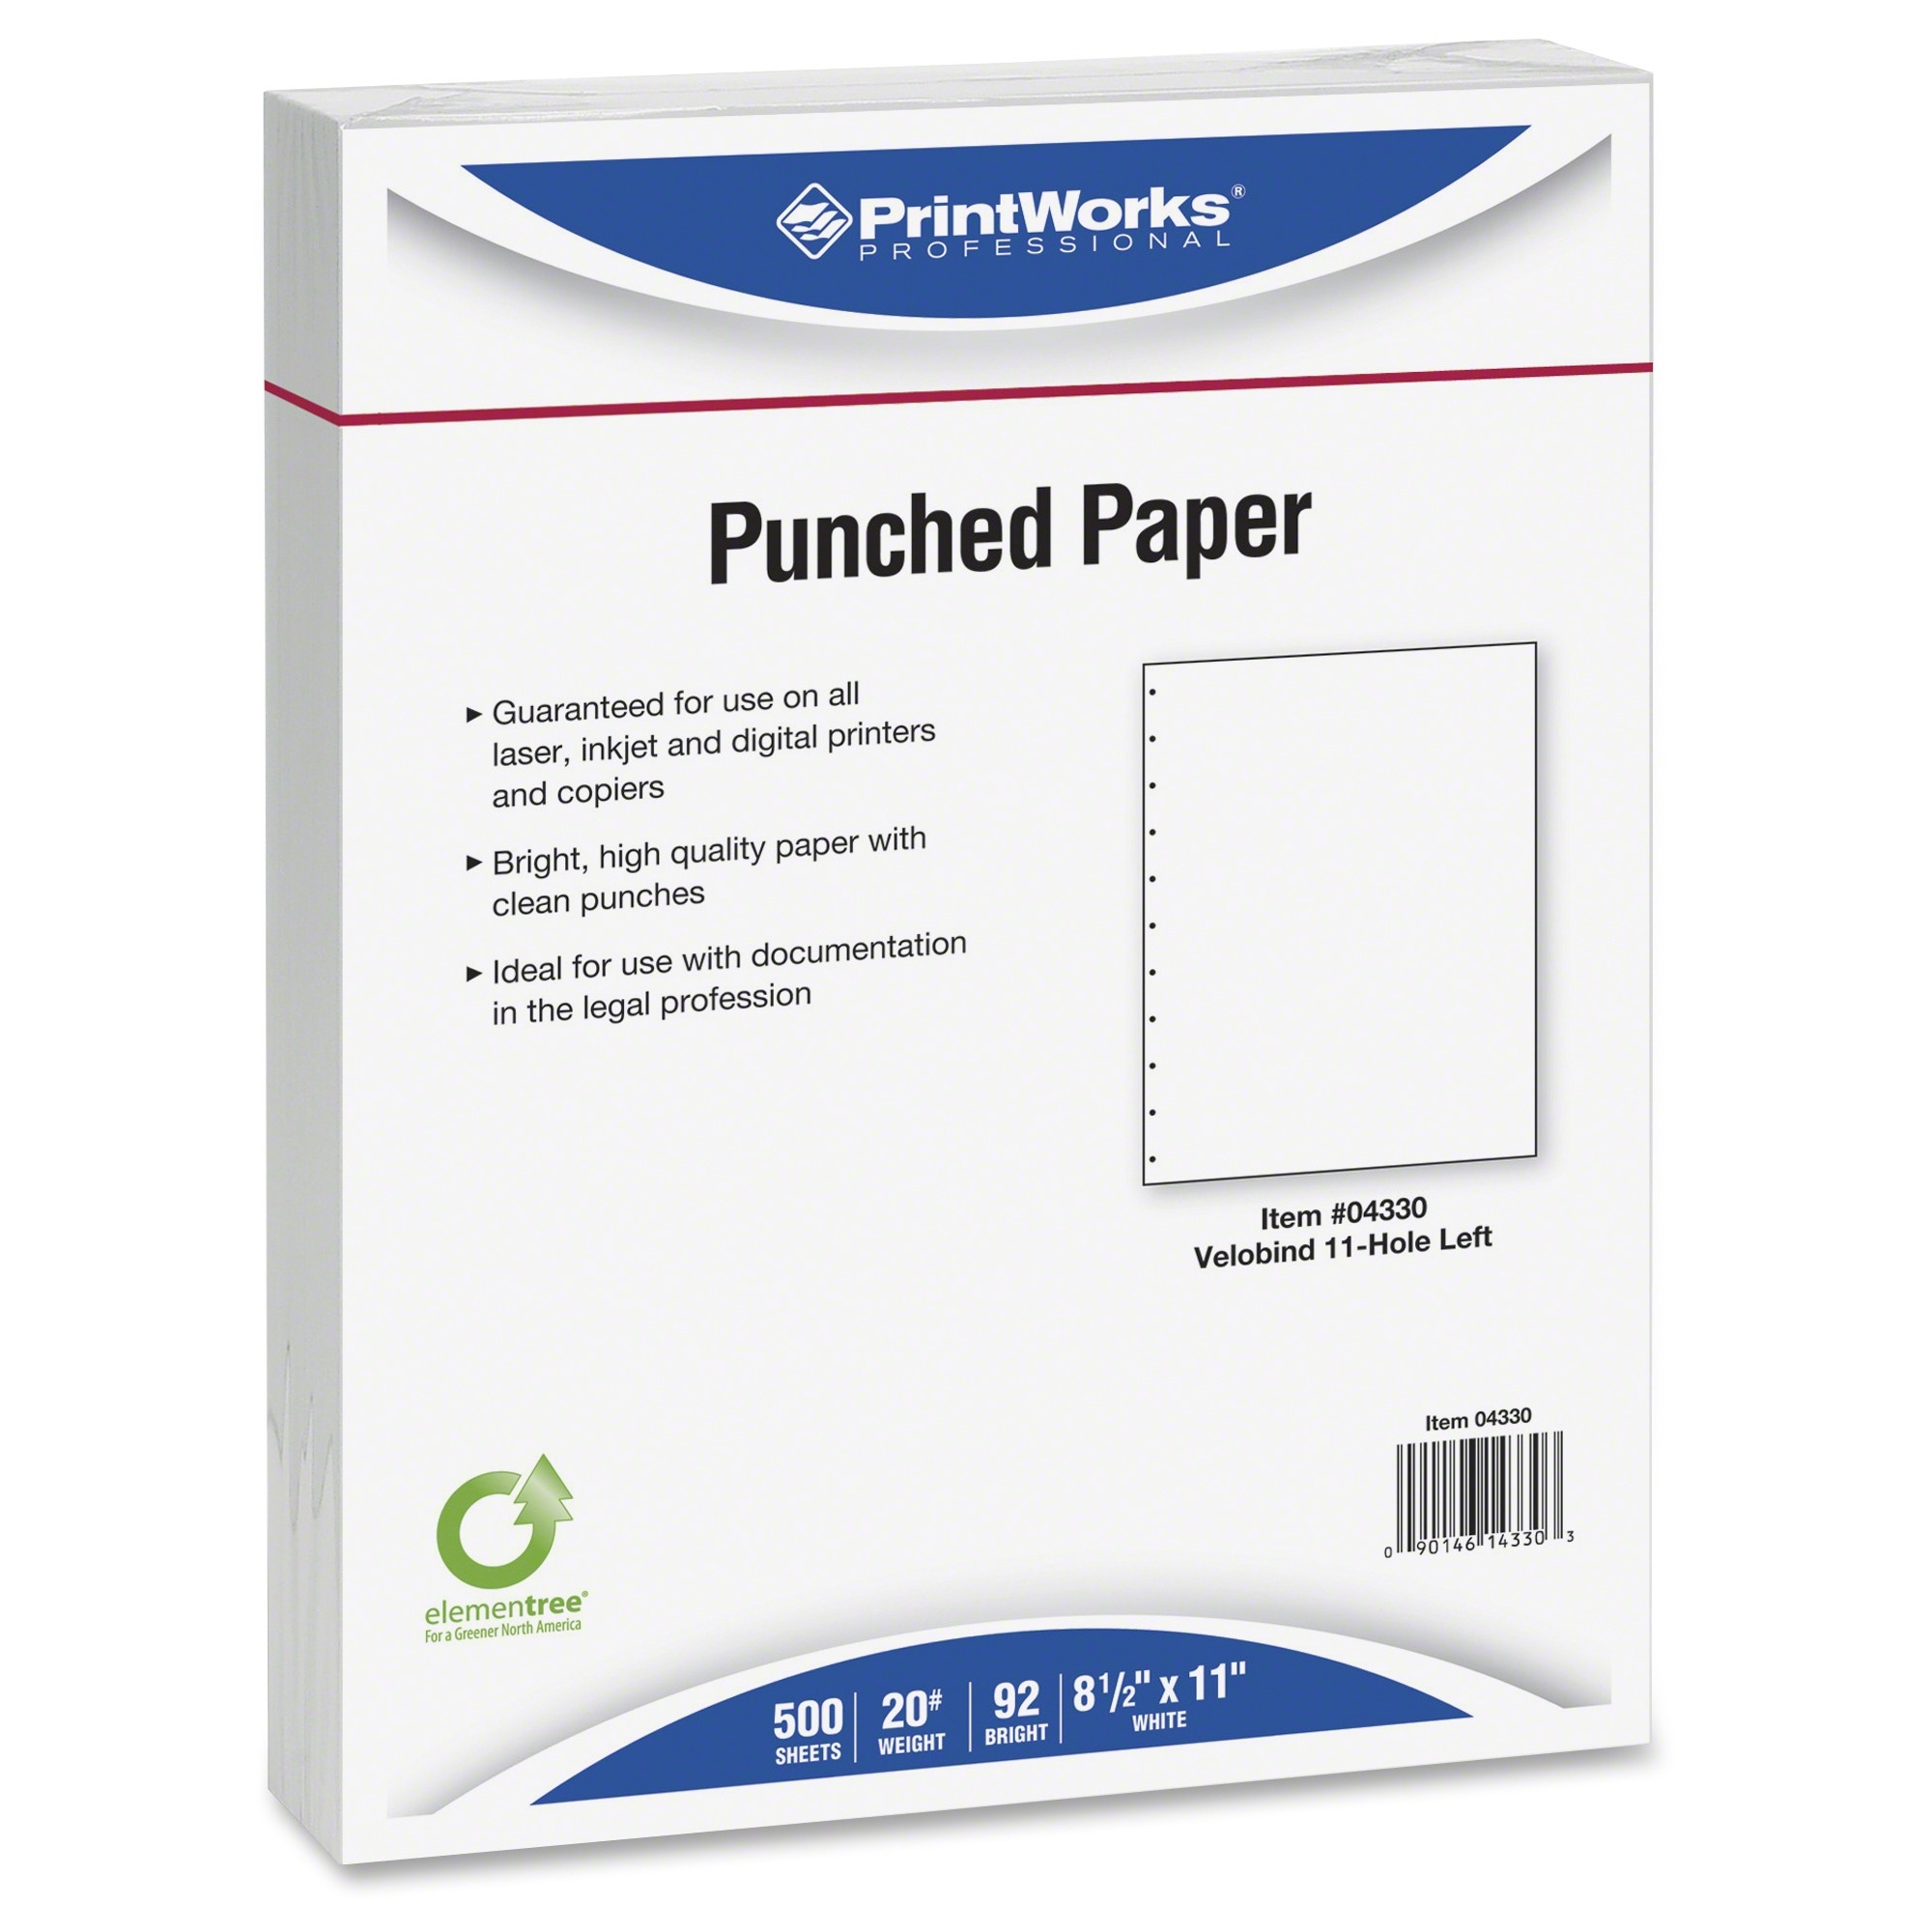 "Printworks Copy & Multipurpose Paper - For Laser, Inkjet Print - Letter - 8.50"" X 11"" - 20 Lb - 11 X Hole Punched - 500 Sheet - White (prb-04330)"